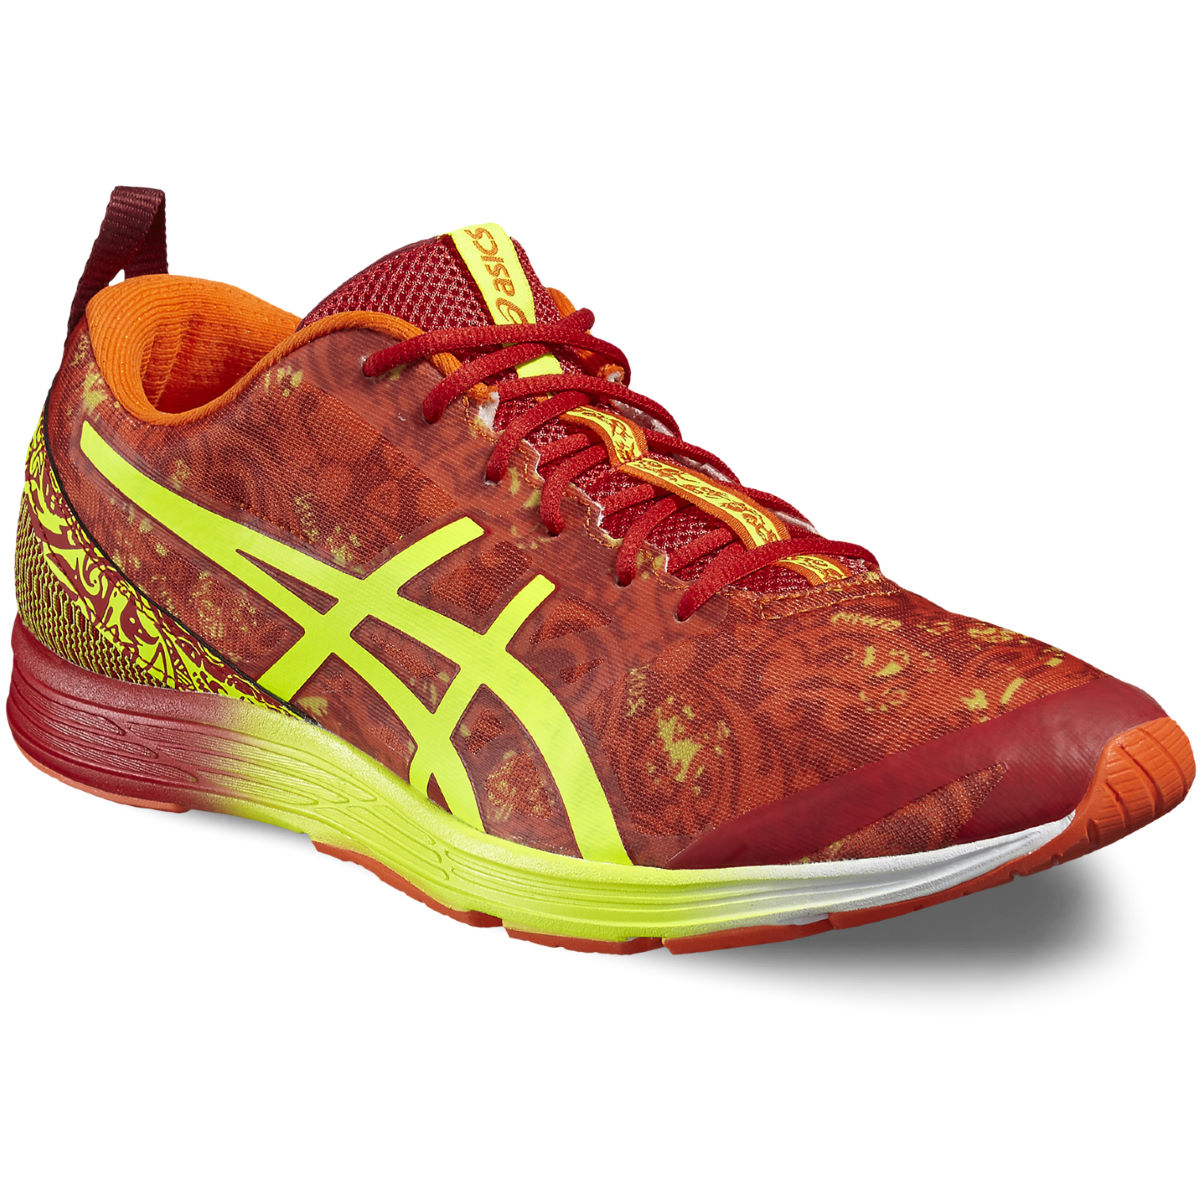 Asics GelHyper Tri 2 Shoes (AW16)   Racing Running Shoes